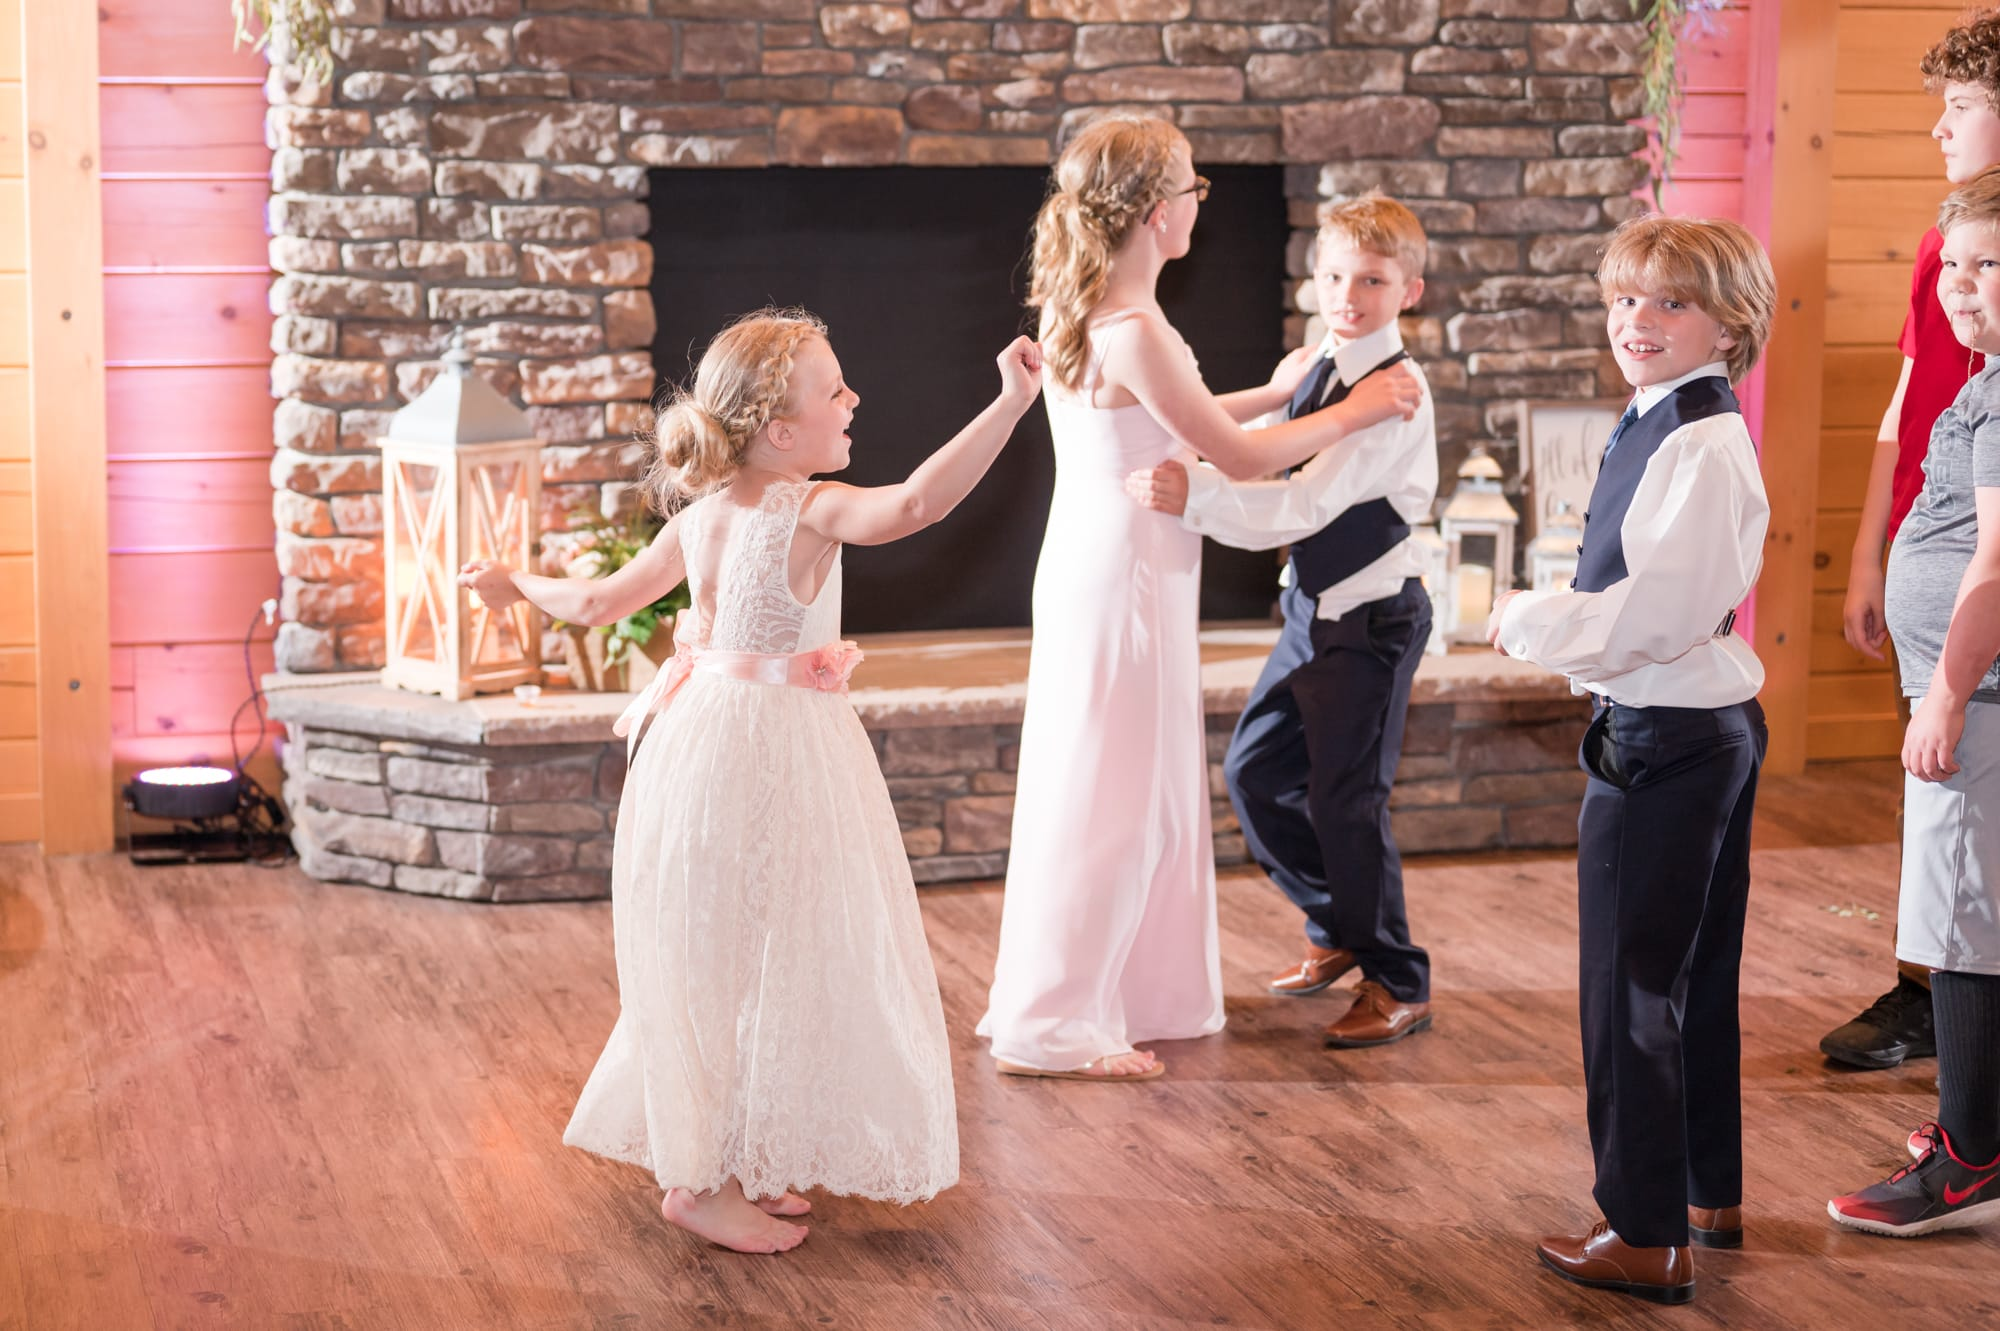 Guests dancing at Rolling Rails Lodge wedding reception